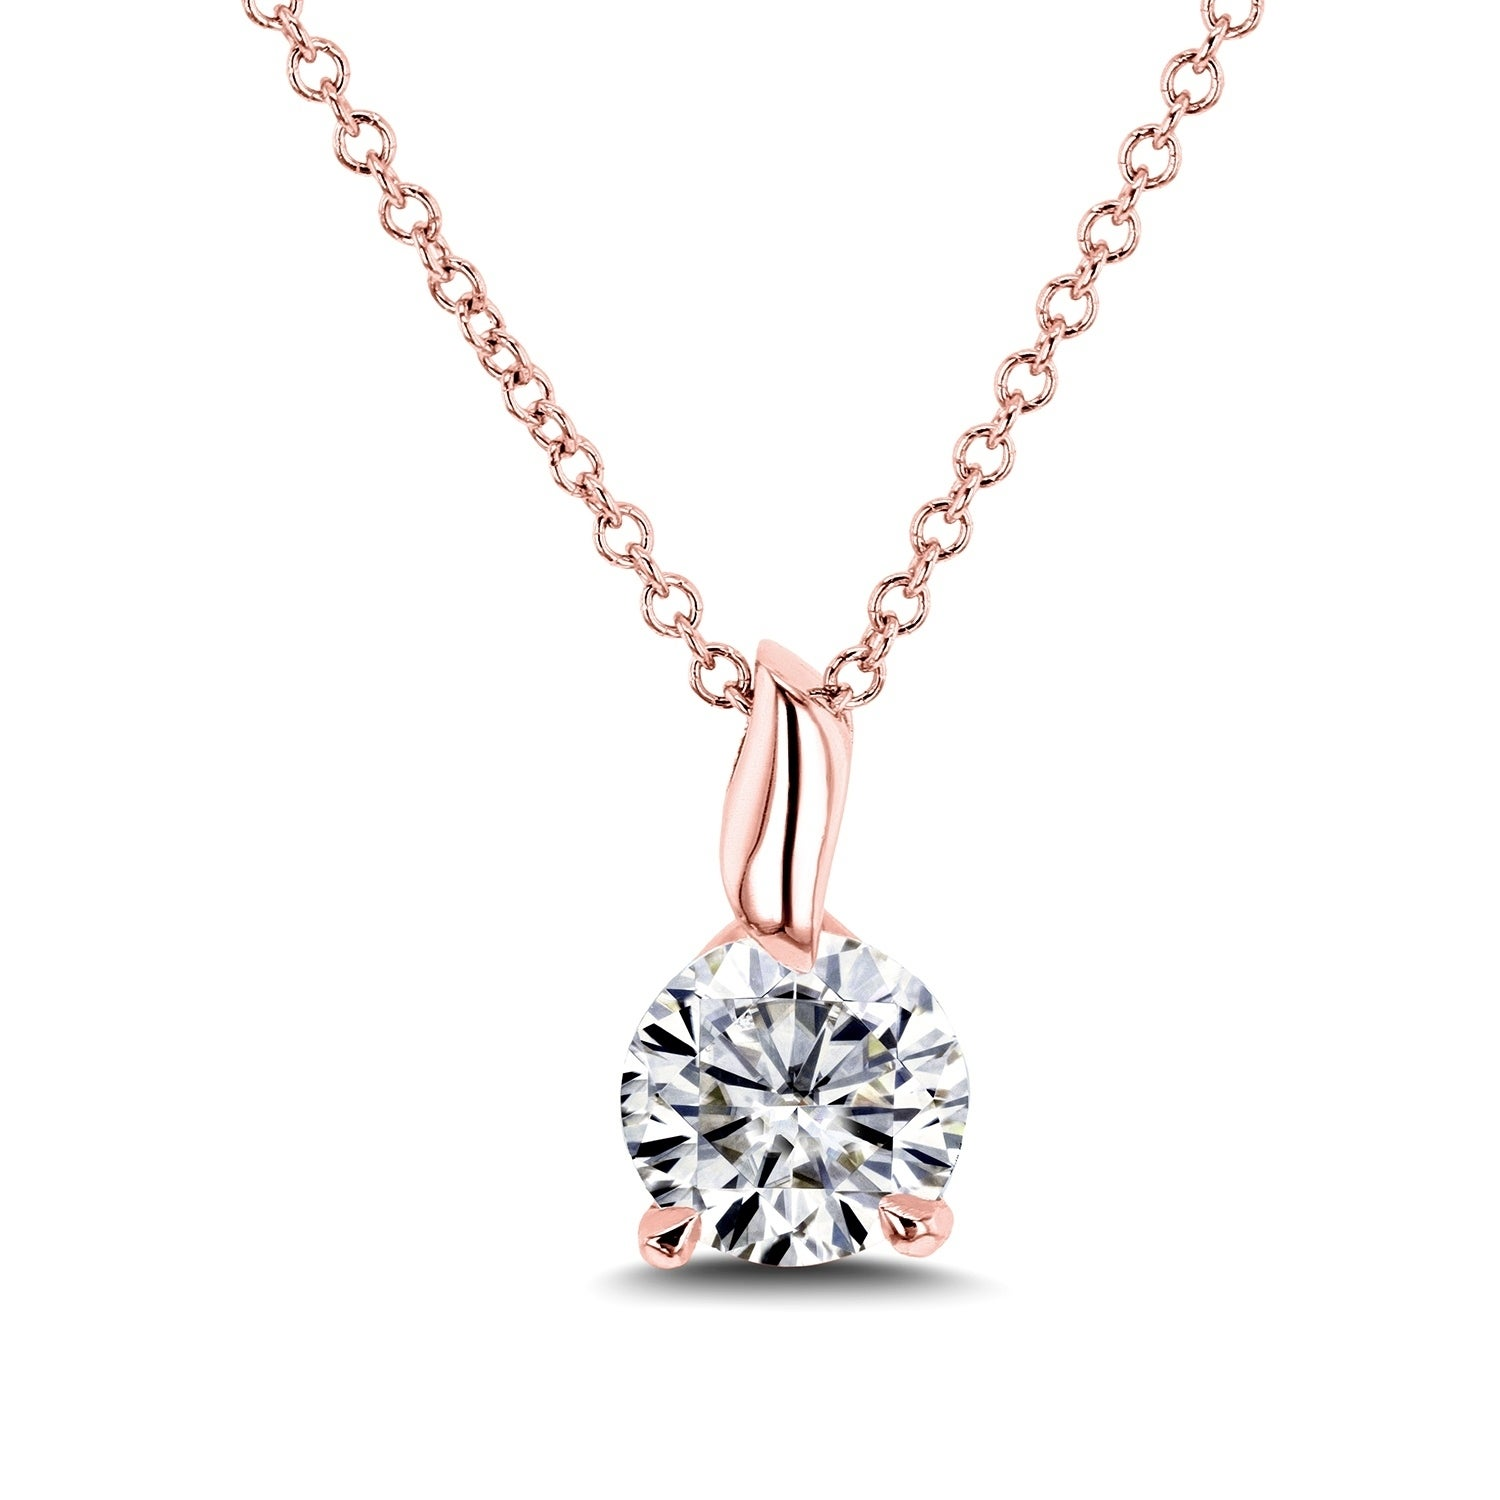 luna moissanite henning kristina collections necklace